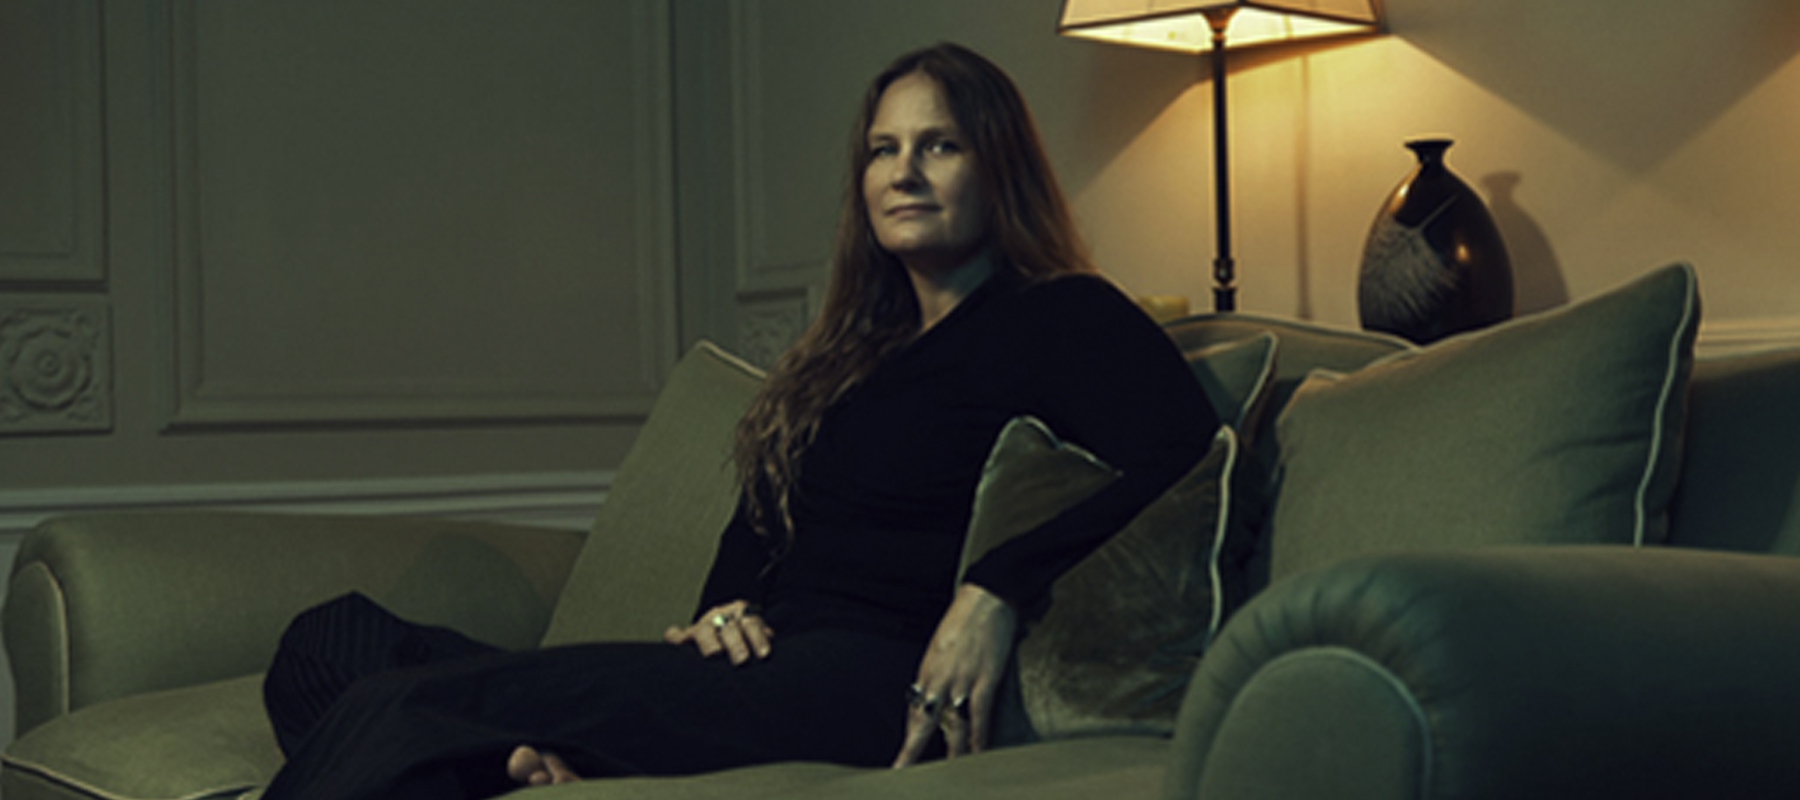 Lidia Yuknavitch sitting on a couch